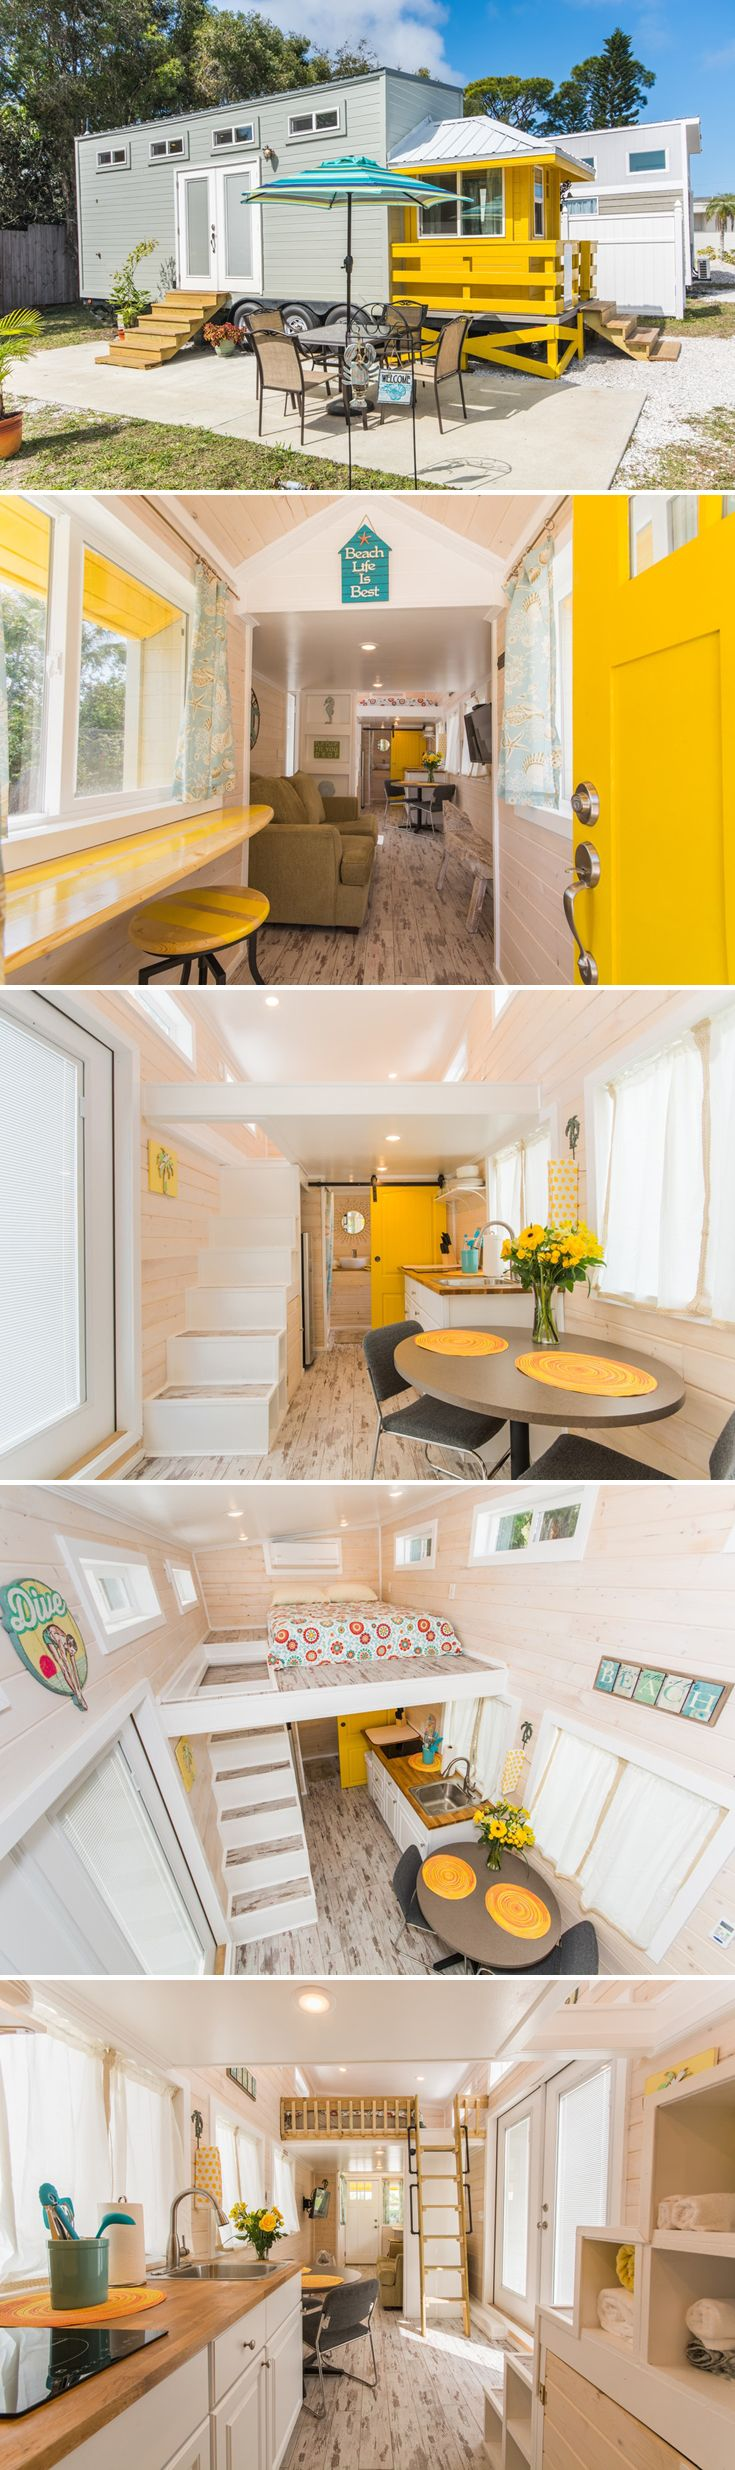 Yellow Liuard by Upper Valley Tiny Homes | Tiny beach house ... on tiny wooden house, tiny kitchen designs, tiny modern house, tiny apartment designs, tiny garden designs, tiny beach home, tiny cottage designs, tiny cabin designs, tiny bathroom, tiny beach cottage, tiny living room design, tiny home decor, tiny office designs, tiny beach houses to build, tiny hotel designs, tiny interior design, tiny bedroom designs, tiny contemporary home designs, tiny townhouse designs, tiny house trailer,